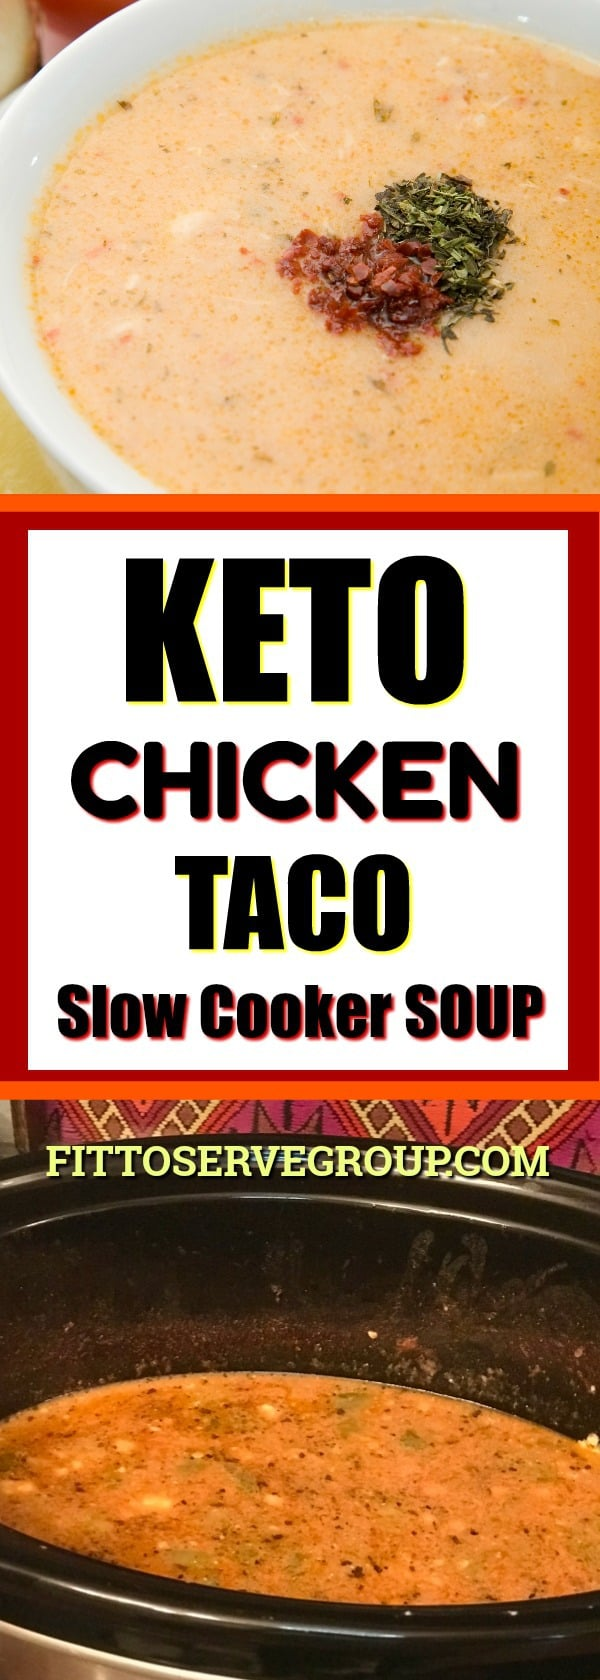 keto CHICKEN taco slow cooker soup